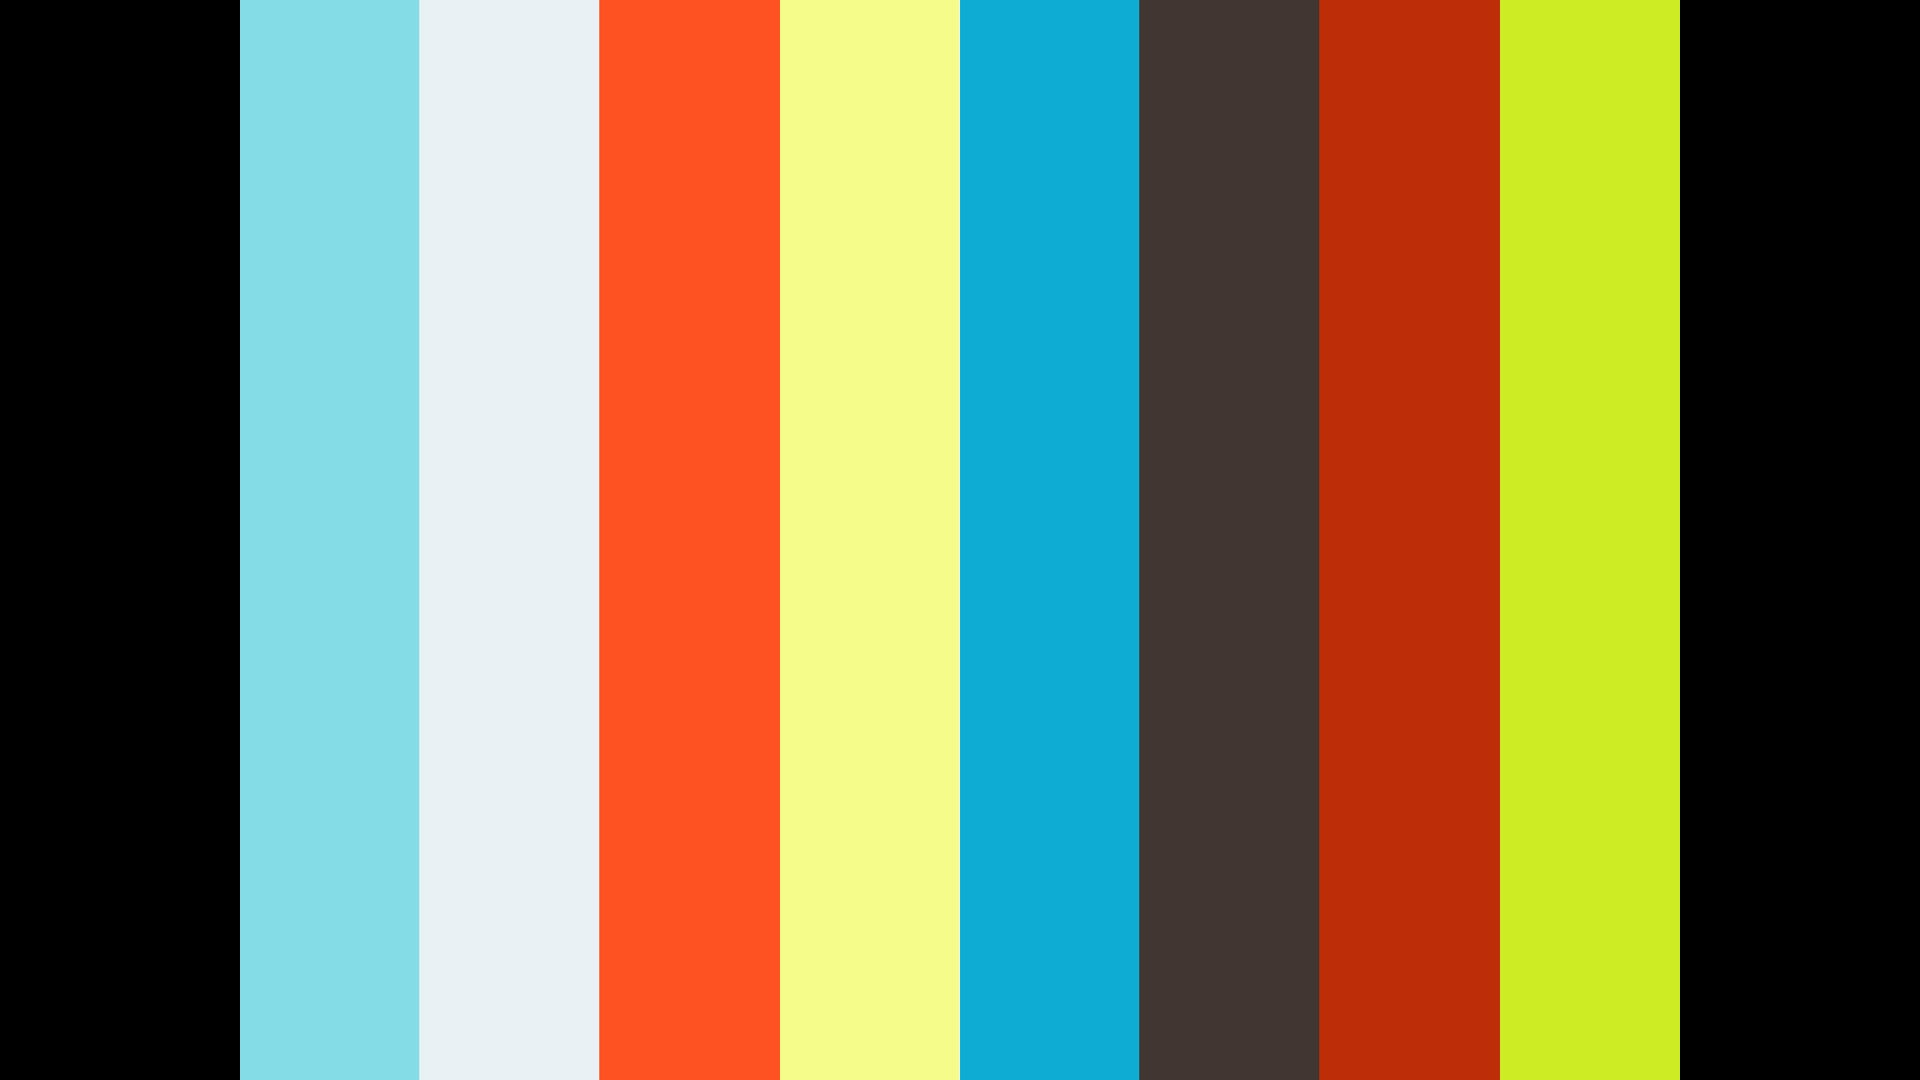 By Bike She Lives, a video by Alice Salimbeni